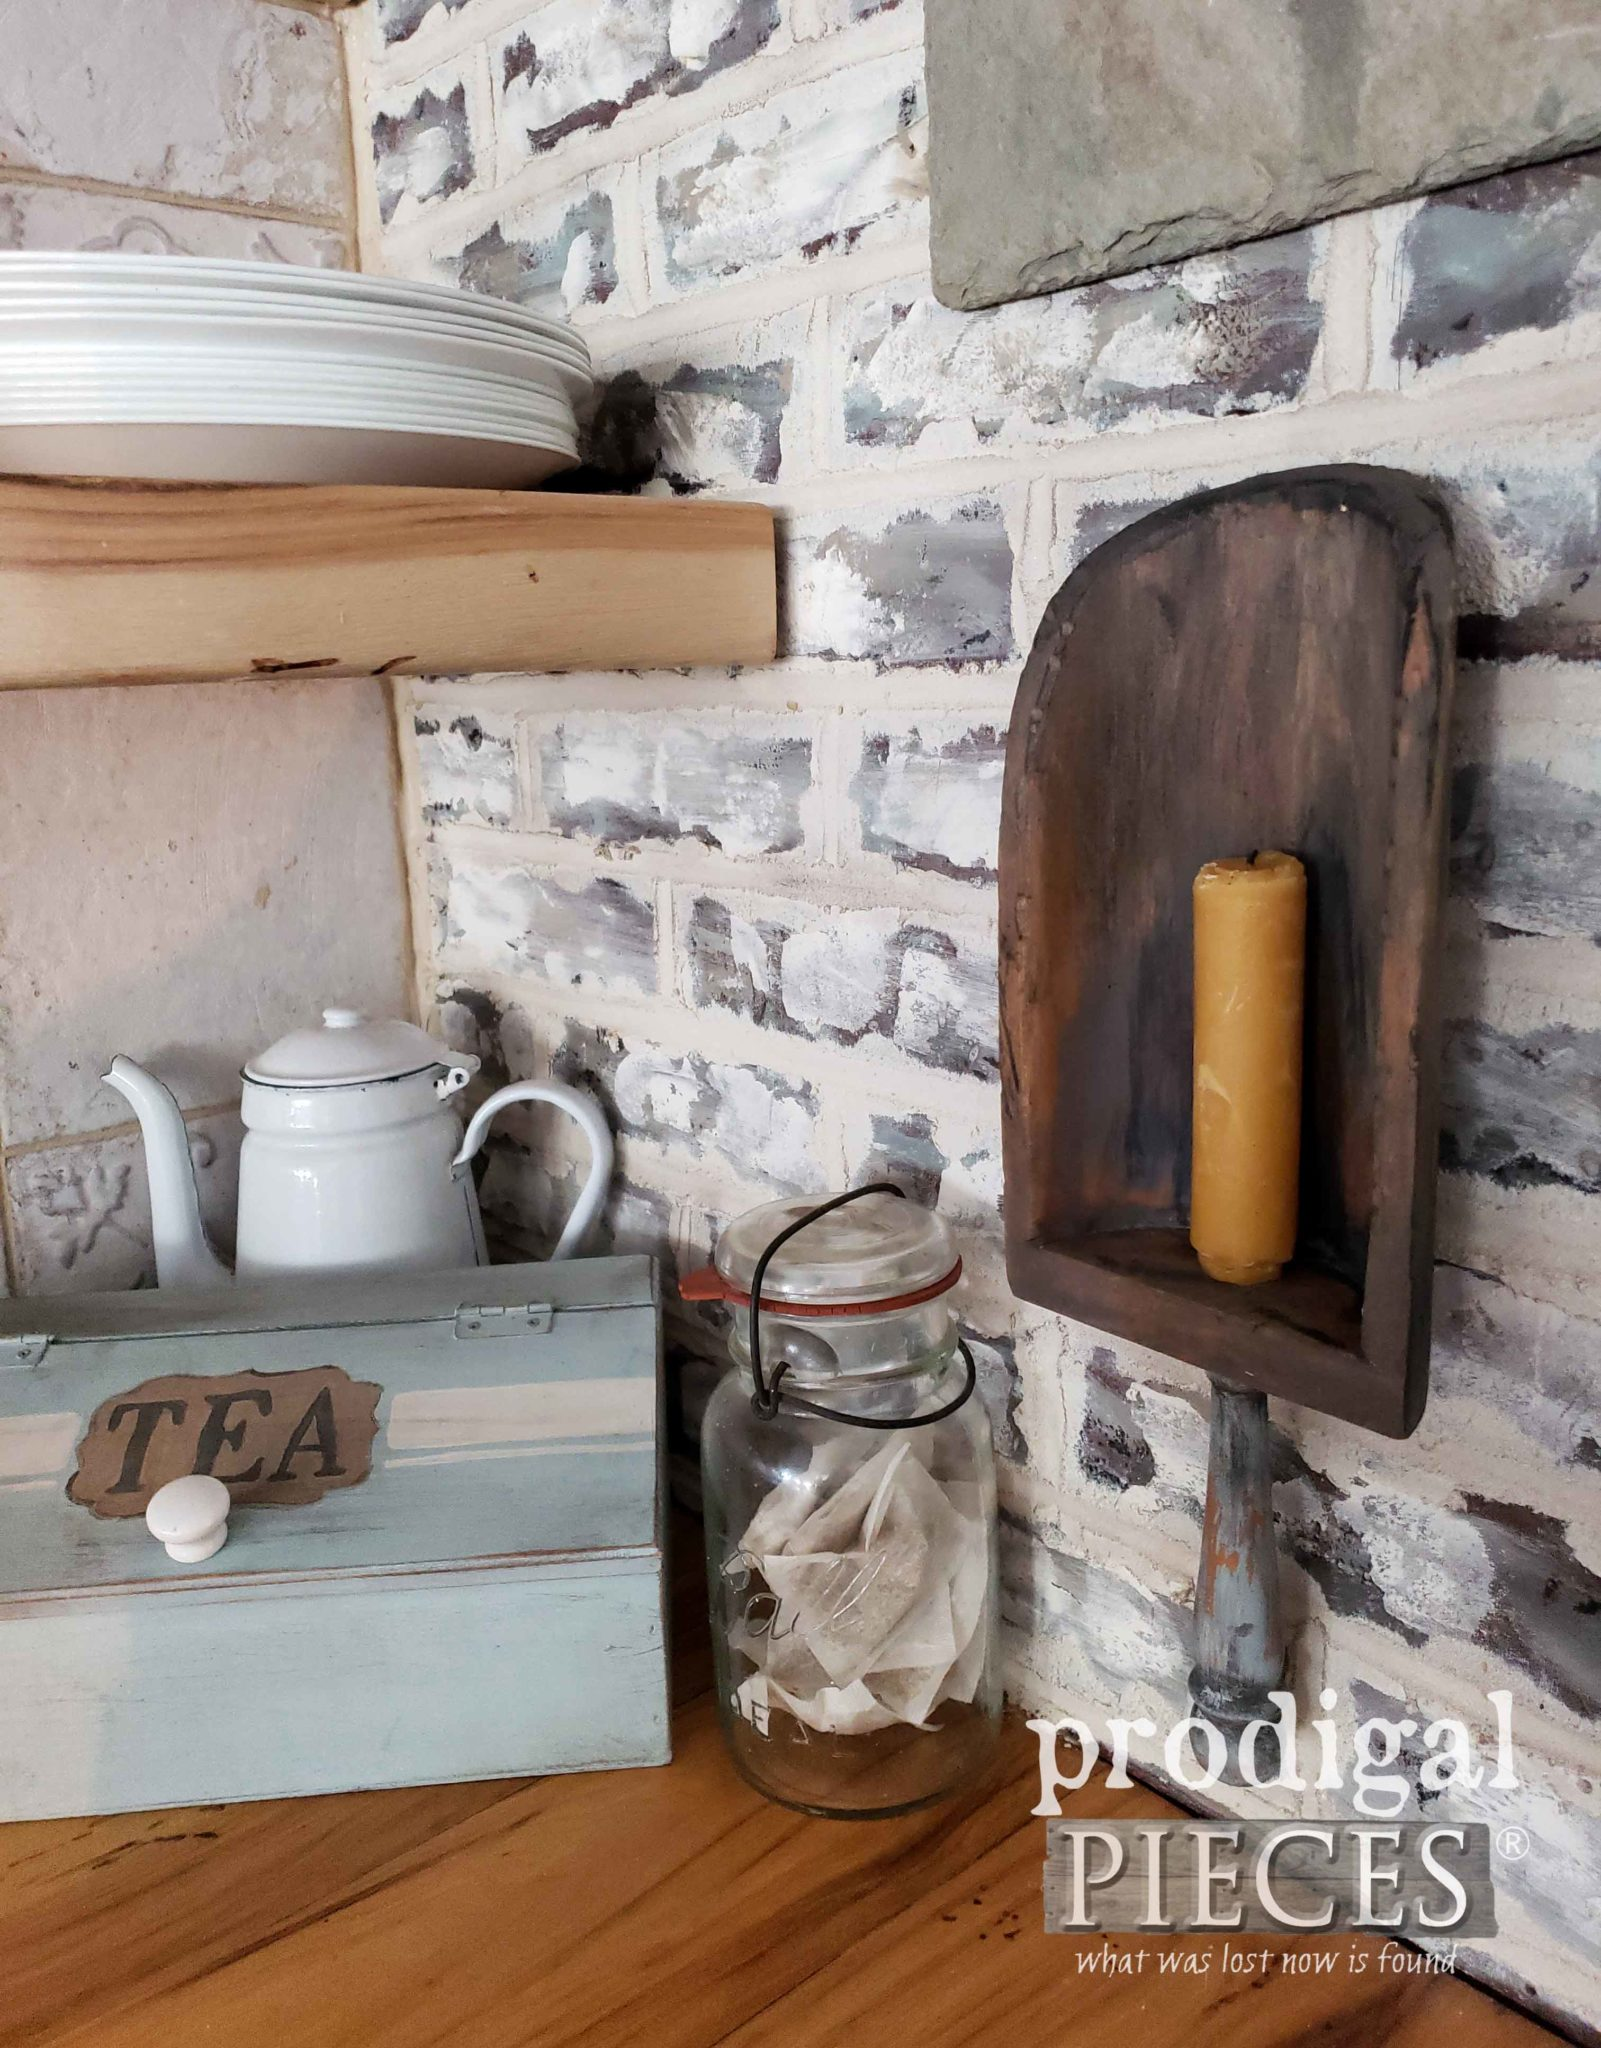 Handmade Farmhouse Kitchen Decor and Storage by Larissa of Prodigal Pieces | prodigalpieces #prodigalpieces #farmhouse #handmade #shopping #diy #vintage #home #homedecor #homedecorideas